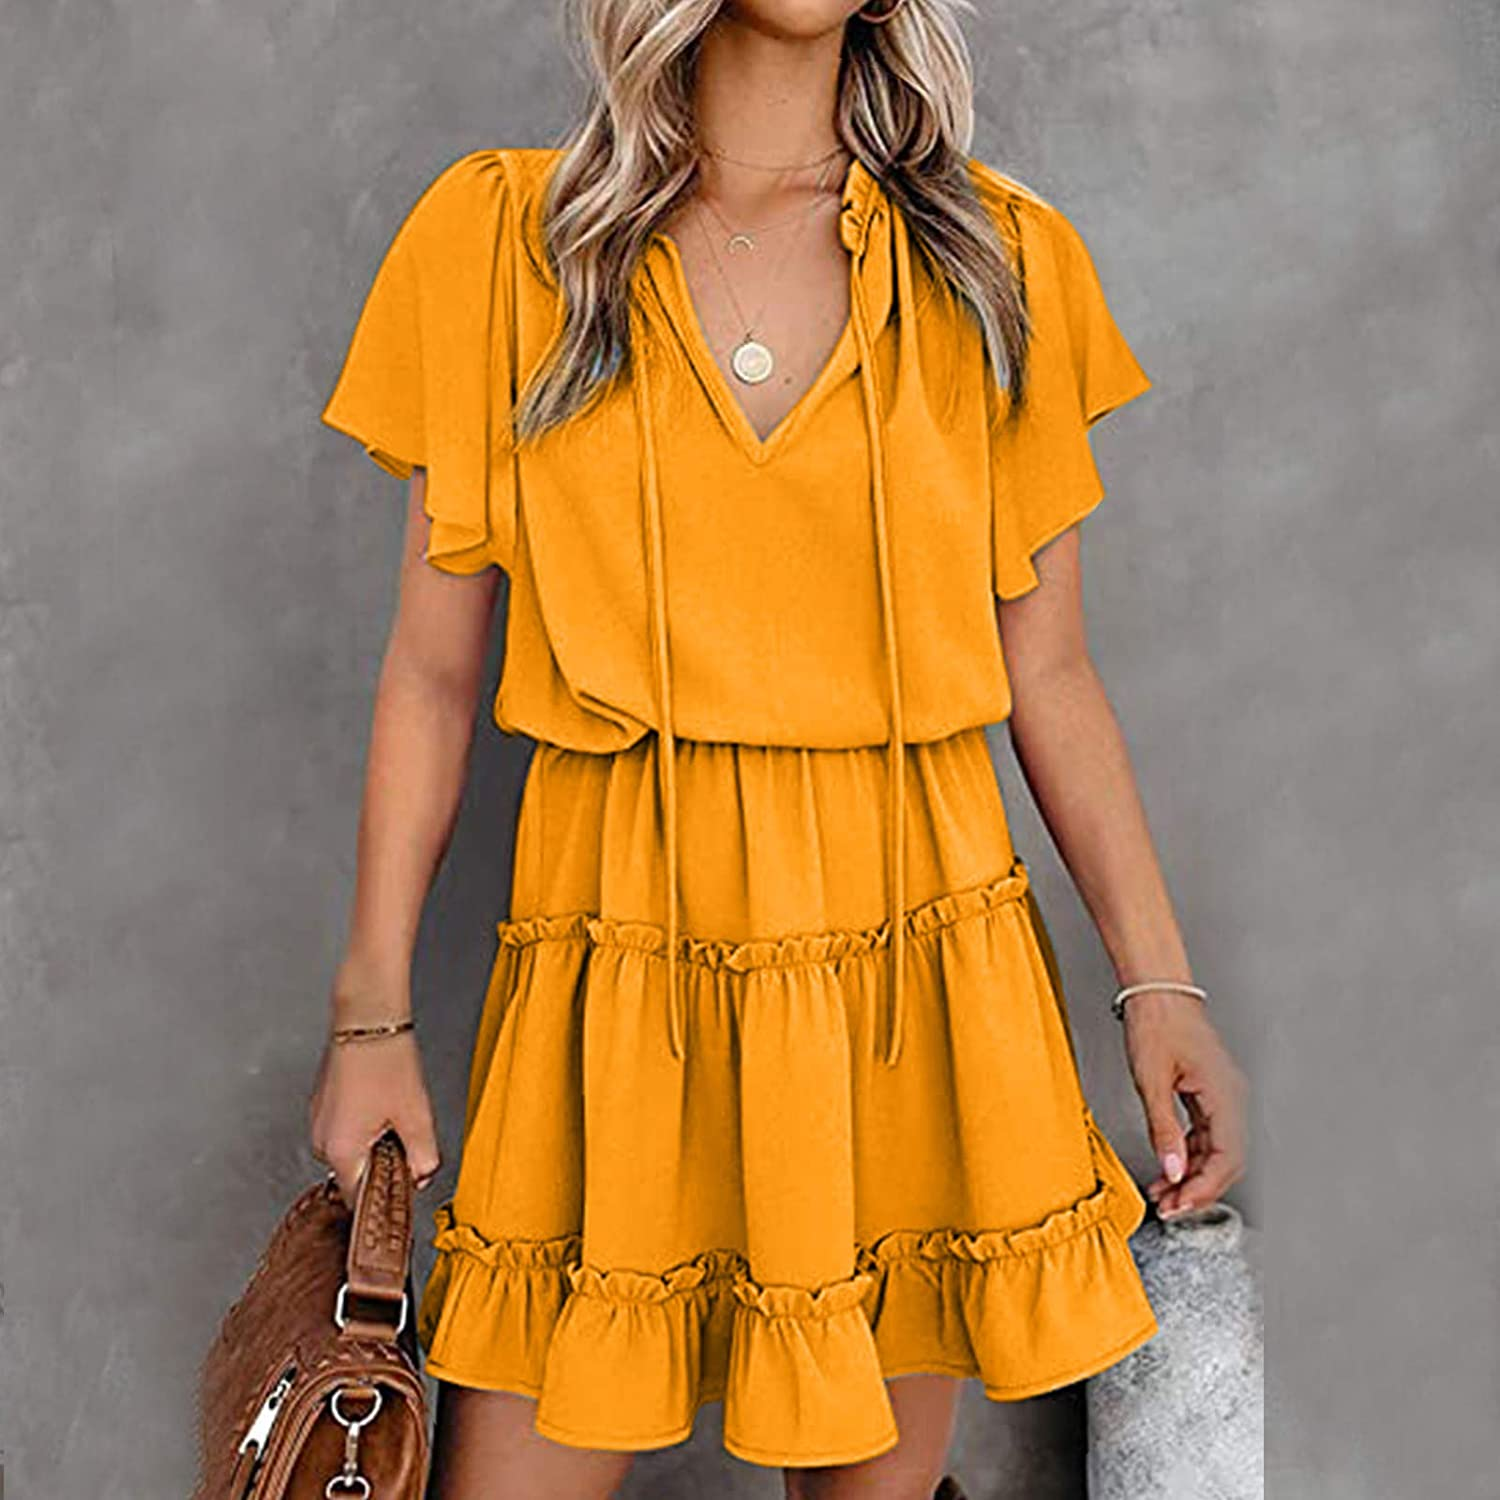 Qonii Dresses for Women Inexpensive Casual Summer Neck Direct stock discount Lotus V Fashion Dress